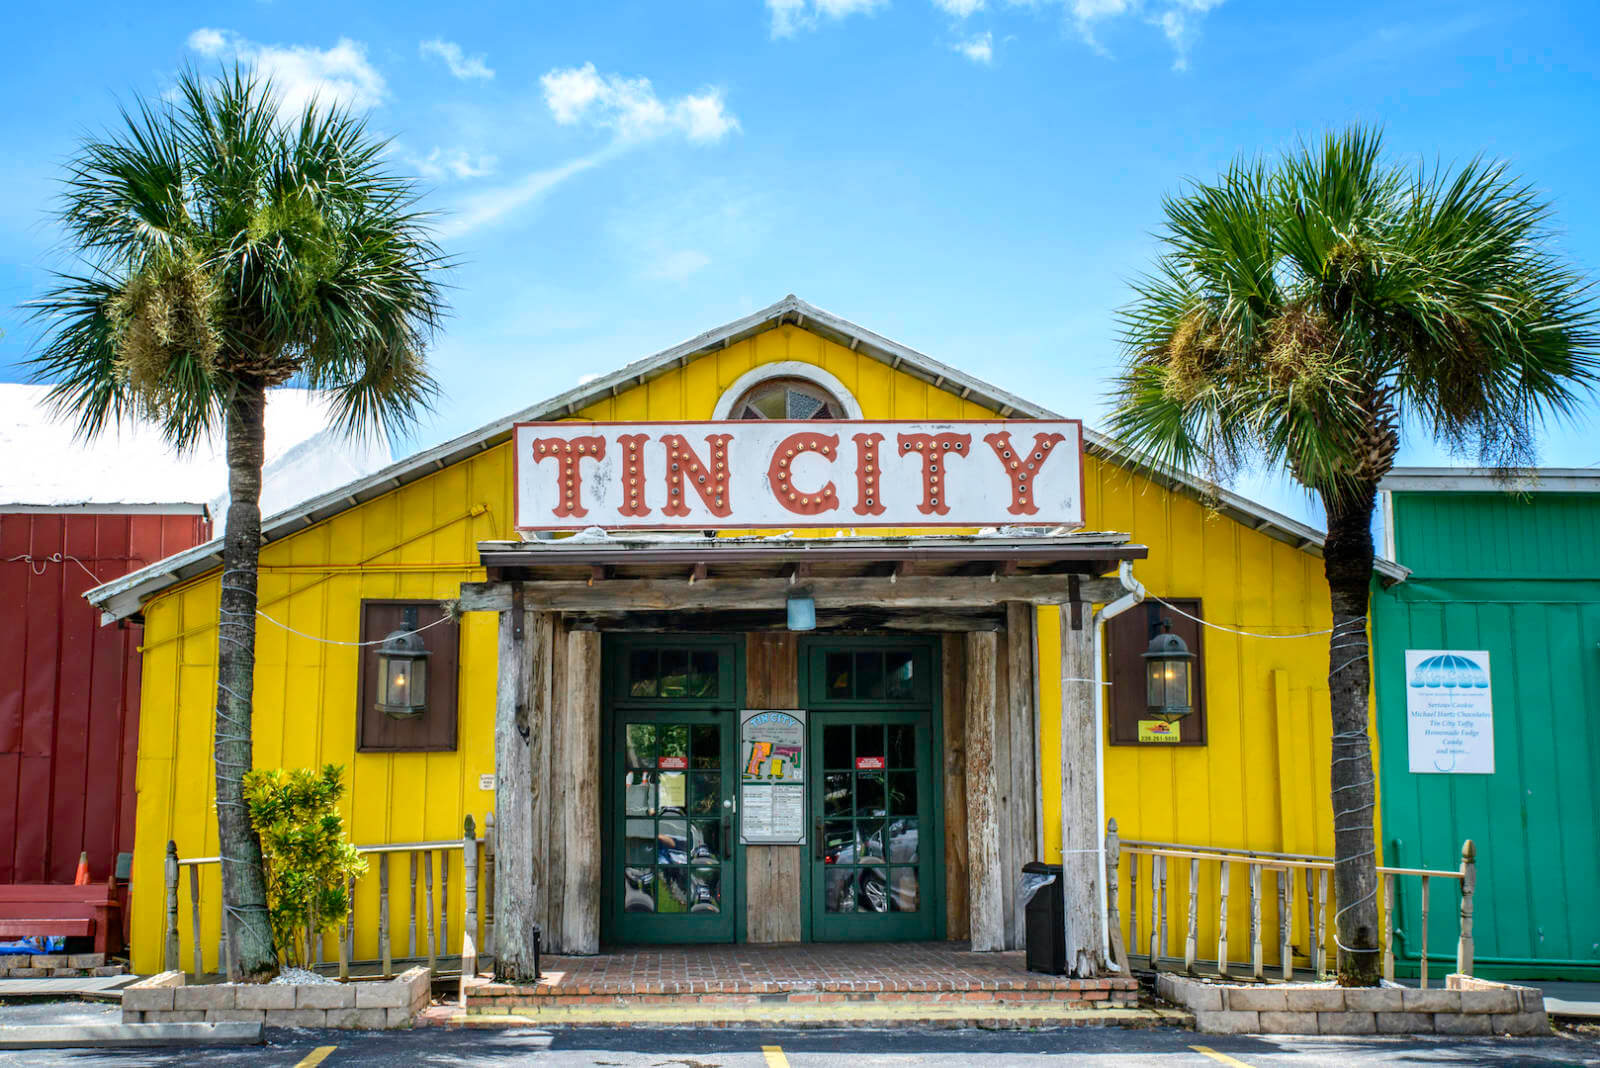 Whether you want to visit one of Naples beautiful beaches, enjoy lunch in historic Tin City, take a fishing trip from the City Dock, or go shopping at the Village on Venetian Bay or 5th Avenue South, the Naples Trolley Tour provides convenient regular service from 8:30 a.m. to 5:30 p.m. every day of the week. Photo by Jennifer Brinkman. | Must Do Visitor Guides